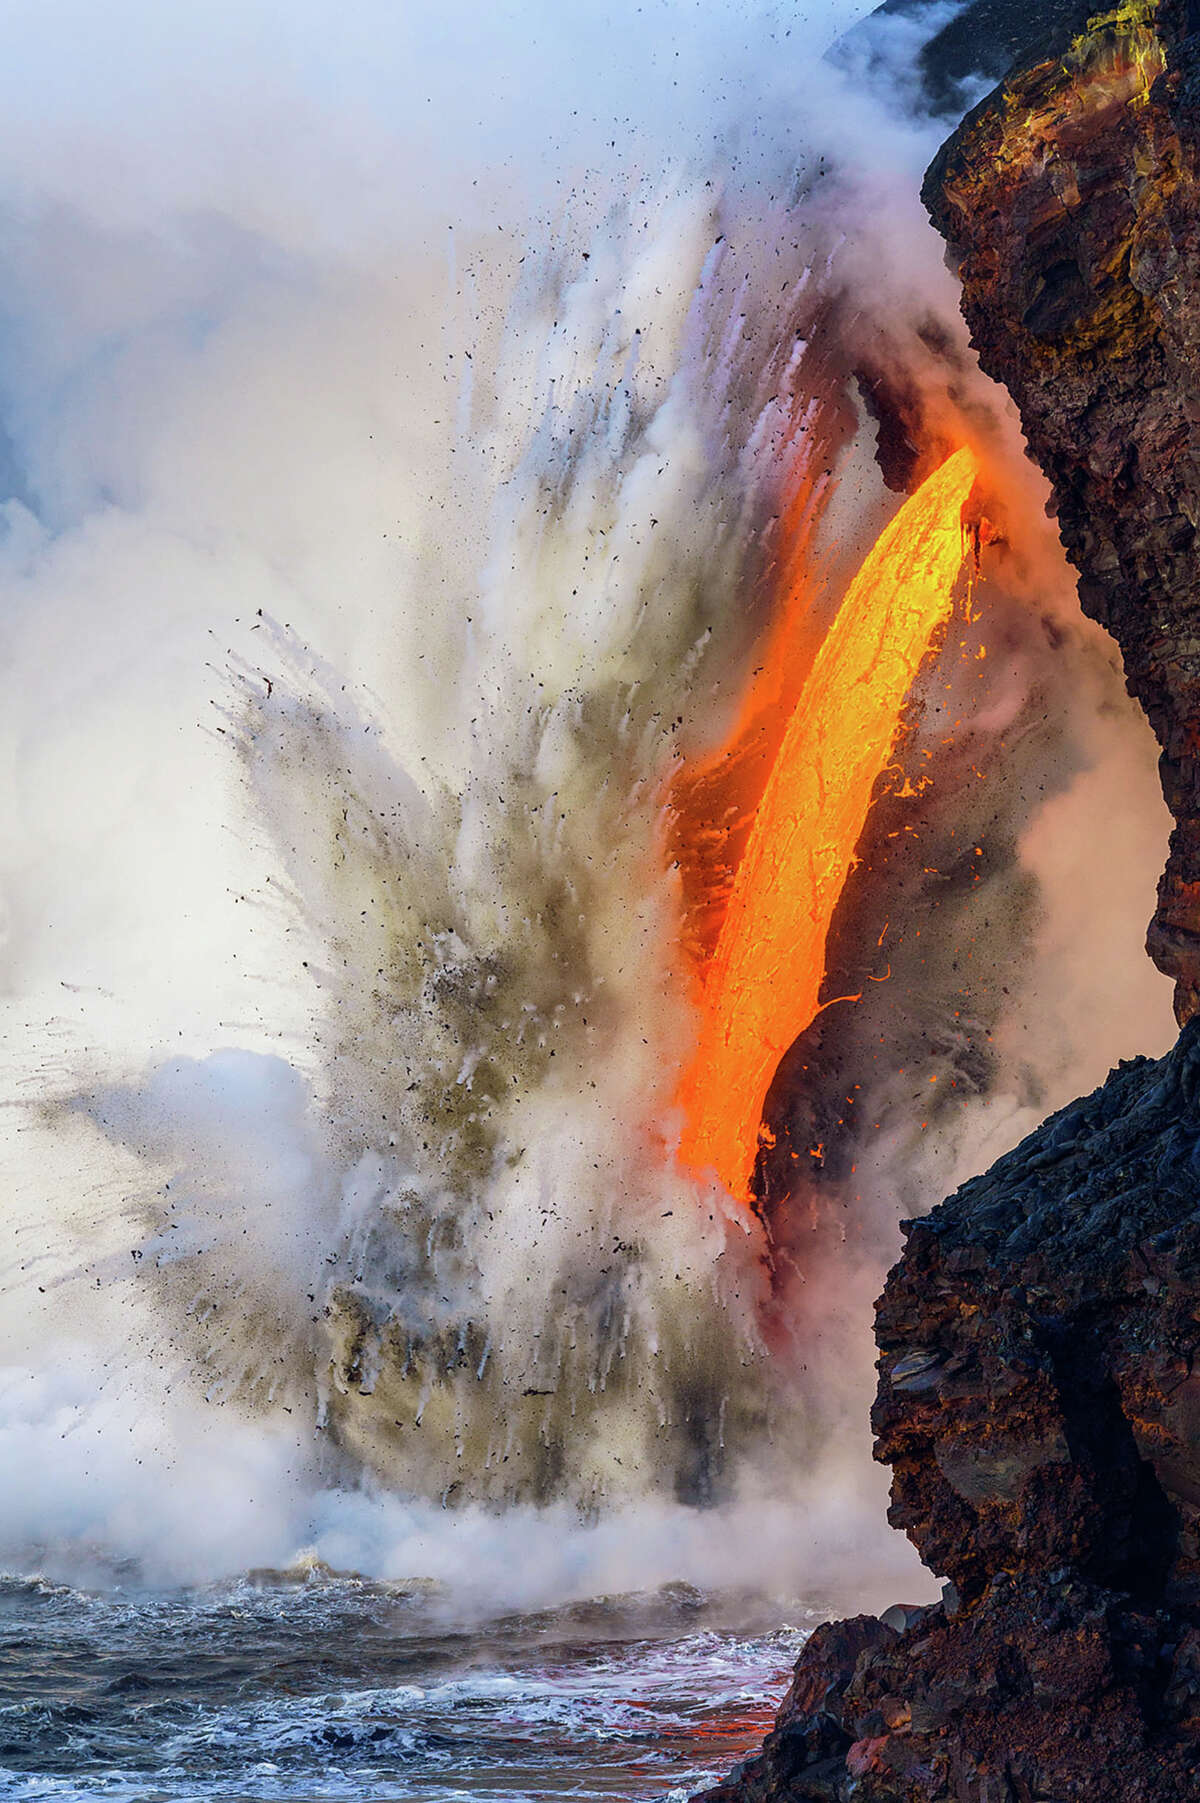 This past January, a steady stream of lava, called a firehose, suddenly gushed from an underground lava tube at the base of Hawai'i's Kilauea volcano, spilling into the Pacific Ocean. As the molten rock met the cooler seawater, steam, sand, and chunks of cooled lava were thrown explosively into the air. The impact of these continual bursts of energy eventually created a crack in the 90-foot sea cliff, which expanded over the course of a week until a section of the cliff broke off entirely into the sea.